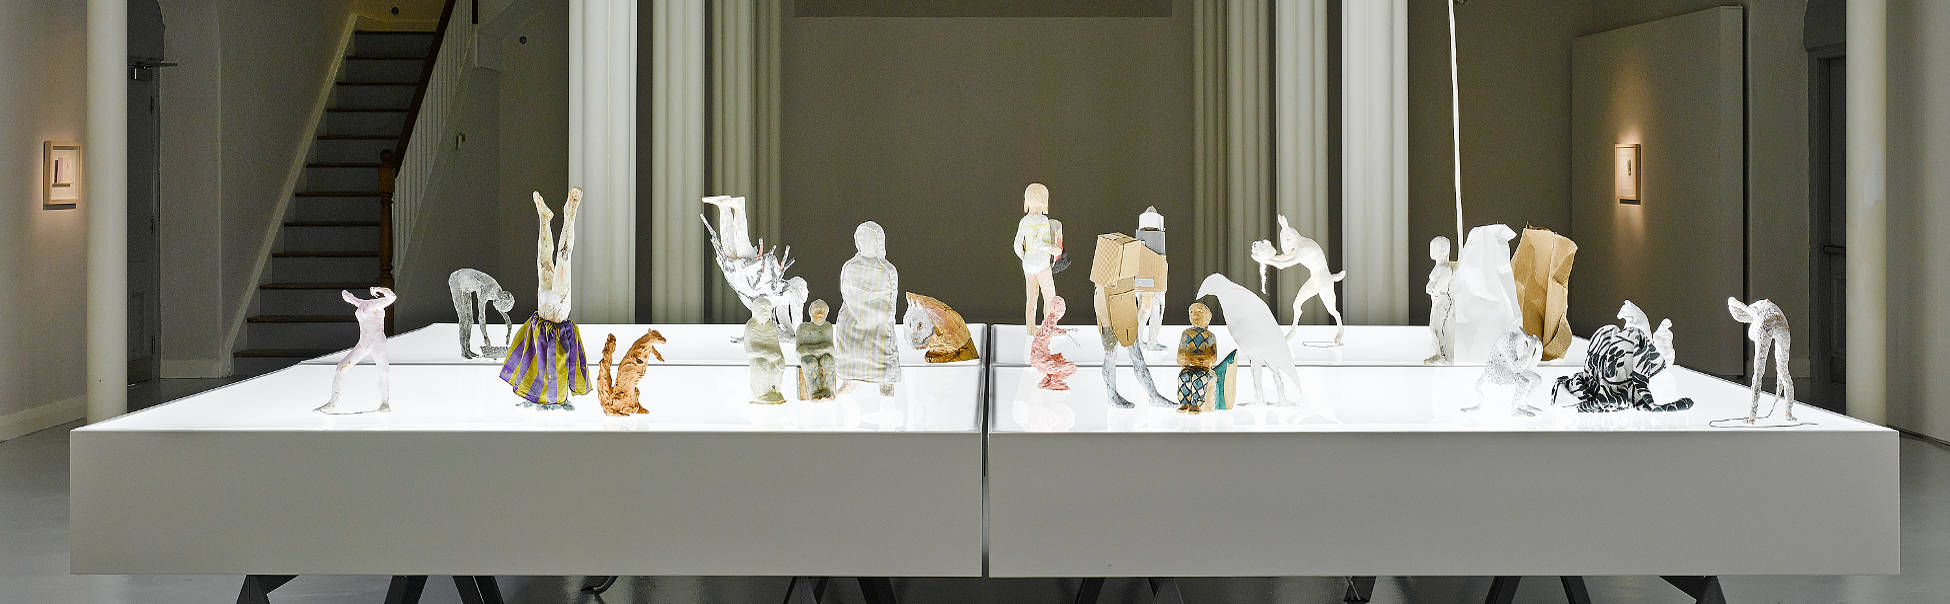 Installation view of My Minds i by Janet Mullarney. Photo Ros Kavanagh